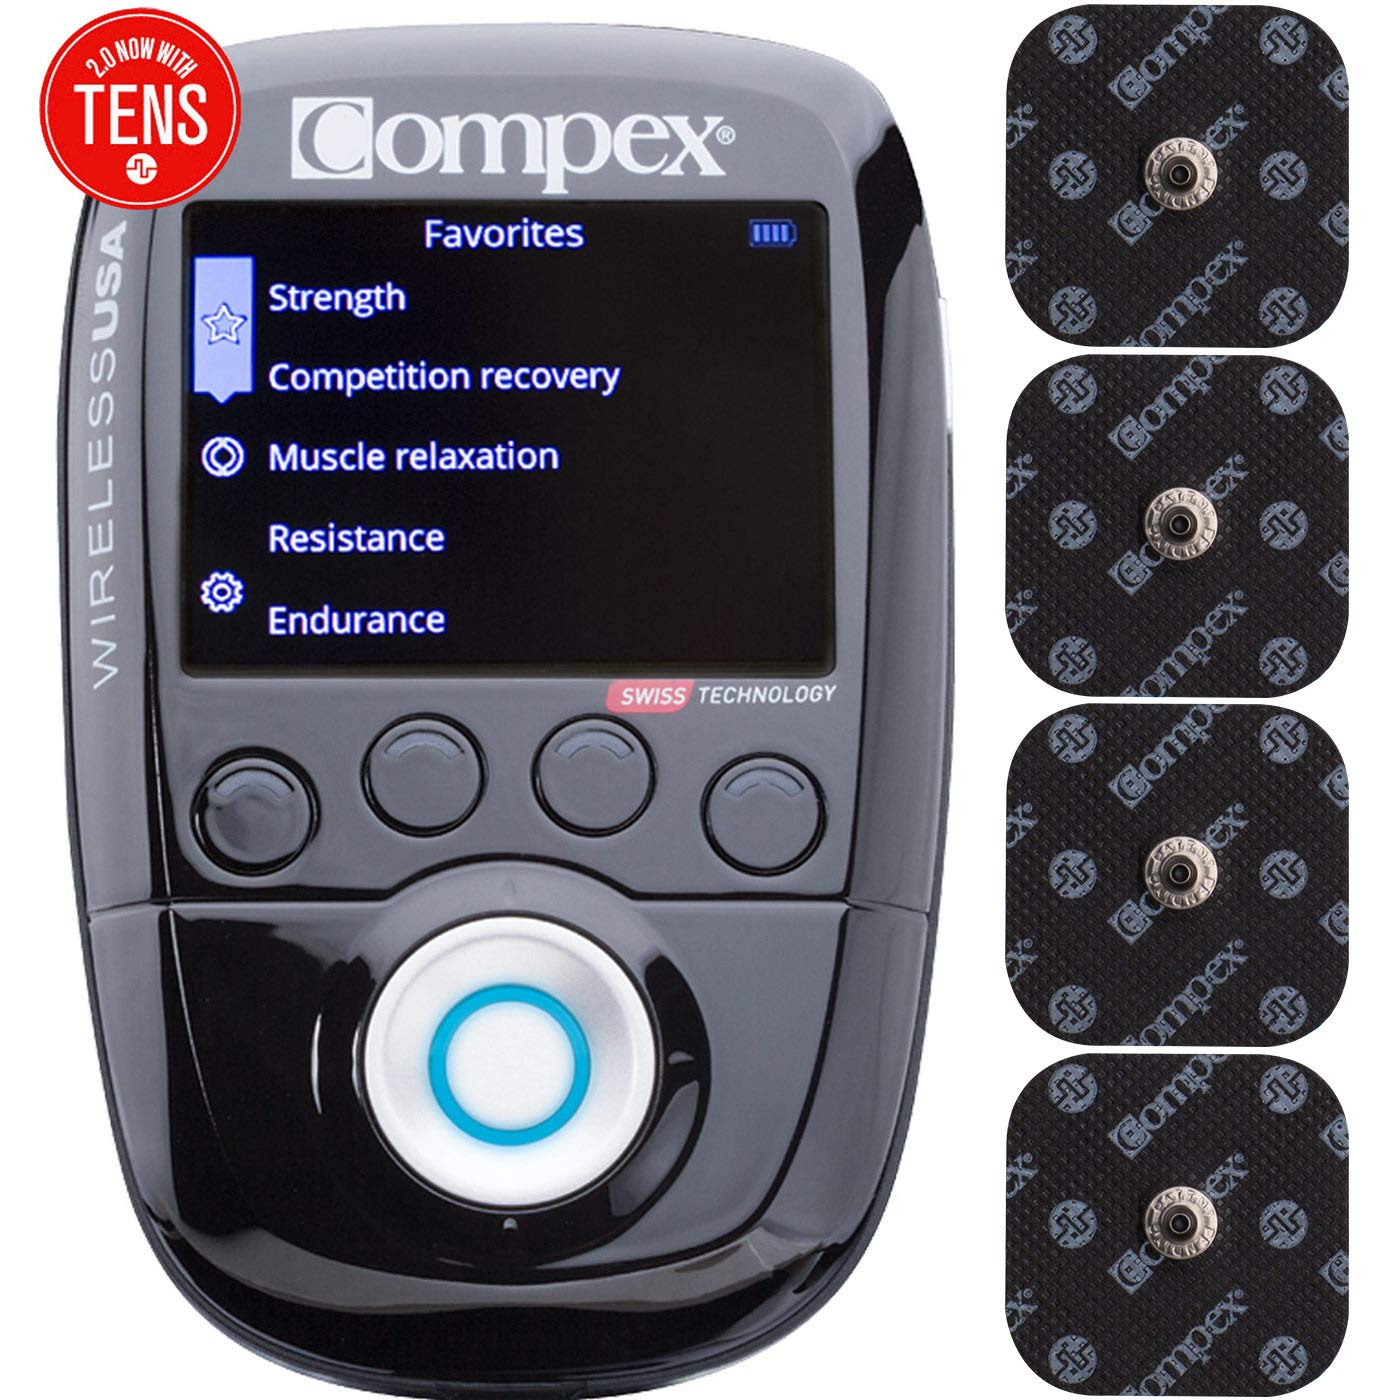 Compex Wireless USA 2.0 Muscle Stimulator w/TENS Bundle Kit: Electric Muscle Stimulation Machine (EMS), 16 Snap Electrodes, 10 Programs, Wireless PODs / 4 Strength / 2 Warm-up / 3 Recovery / 1 TENS by Compex